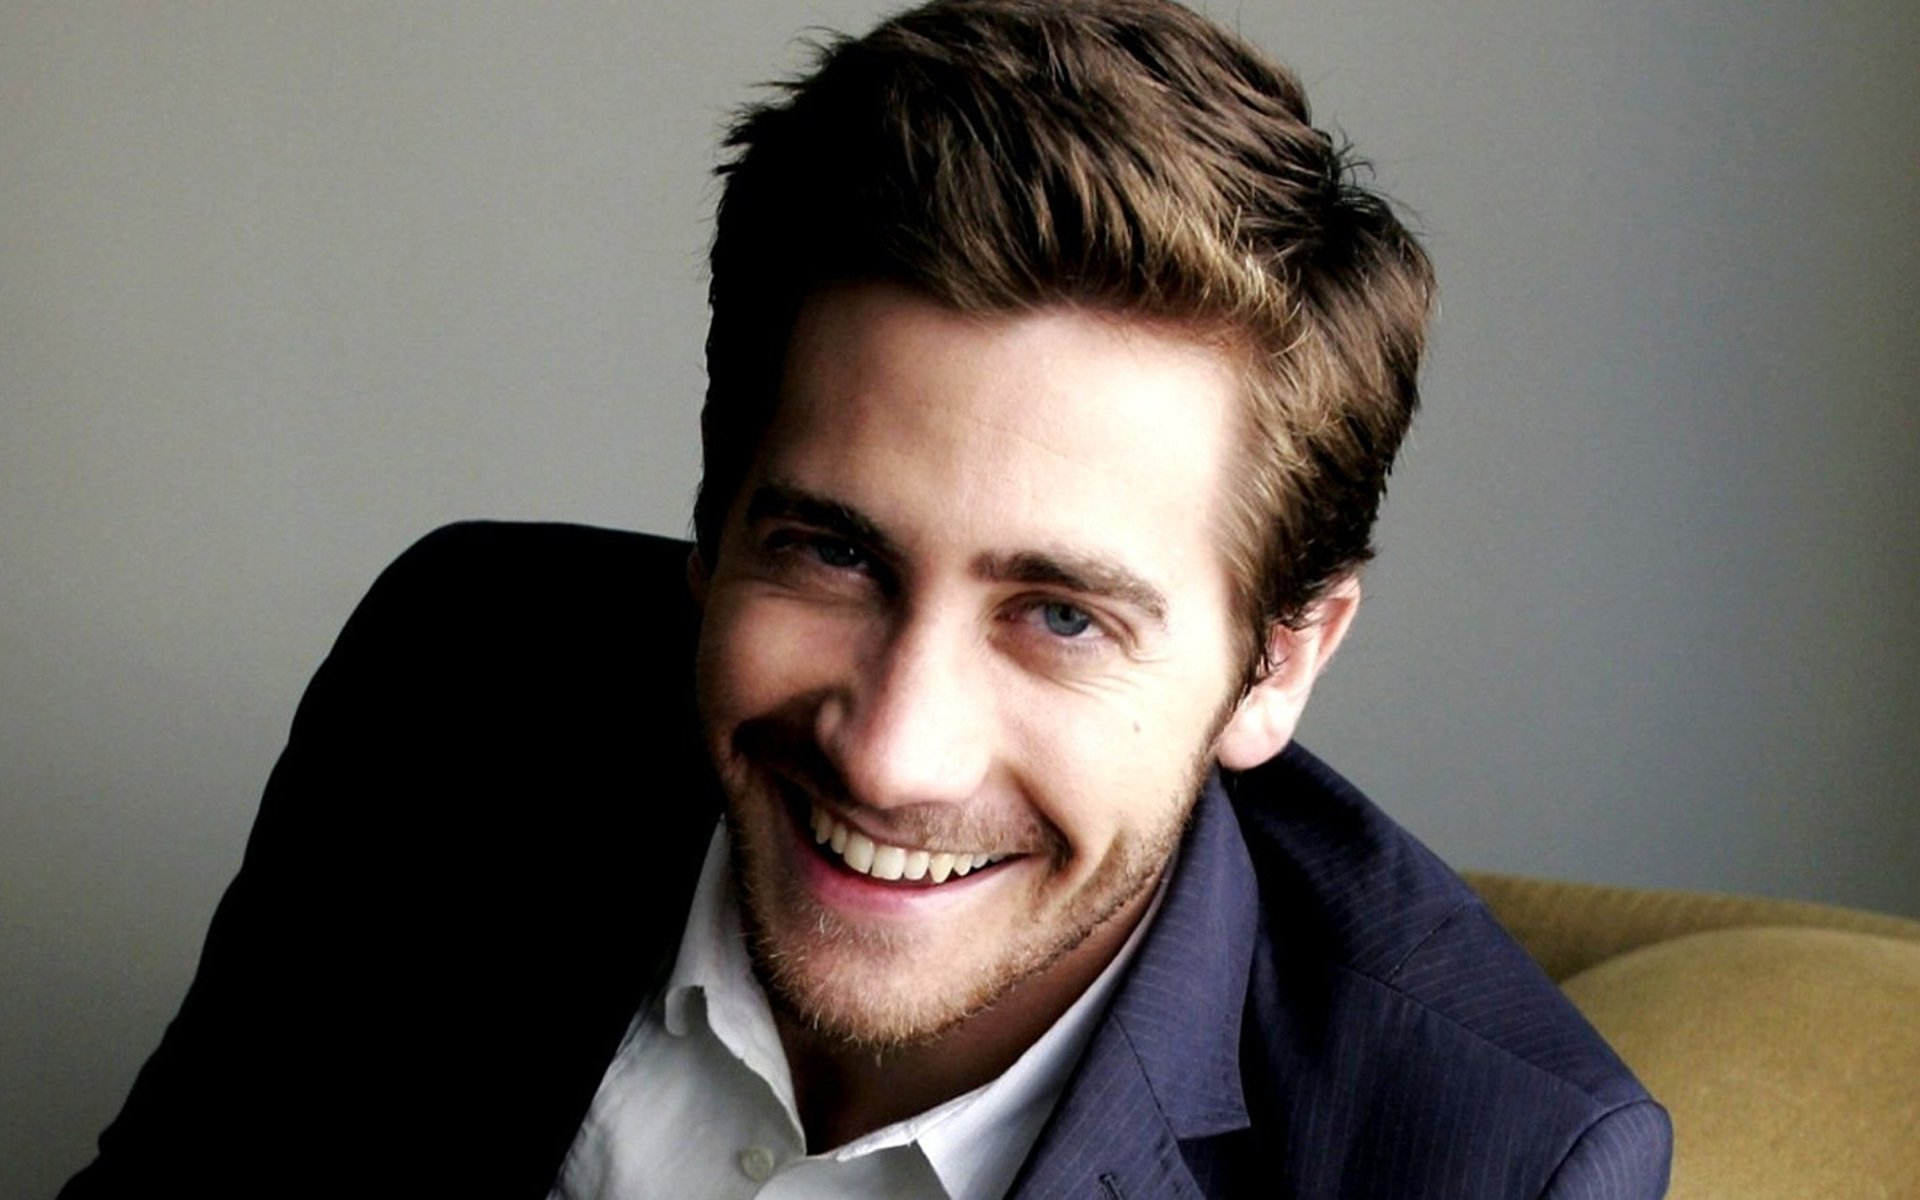 Jake Gyllenhaal HD Wallpaper Background Image 1920x1200 ID 1920x1200